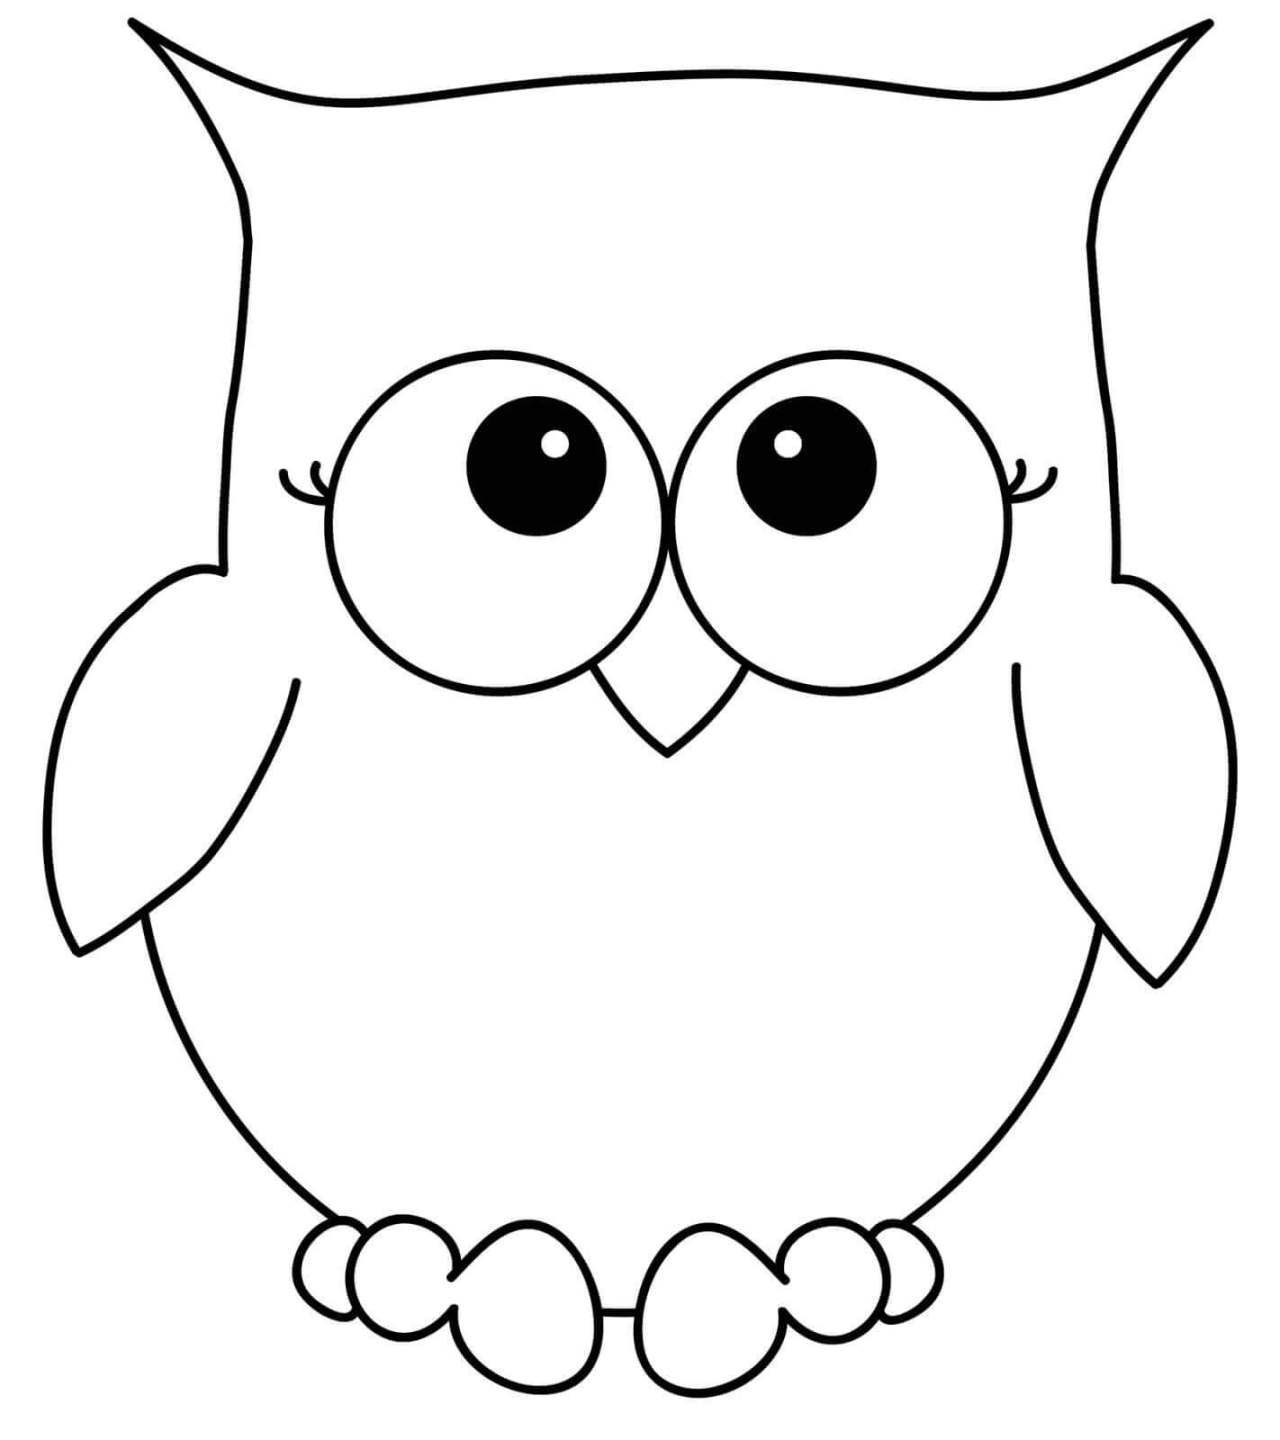 Halloween Coloring Pages For Kids Free Printables Owl Coloring Pages Owl Patterns Halloween Coloring Pages